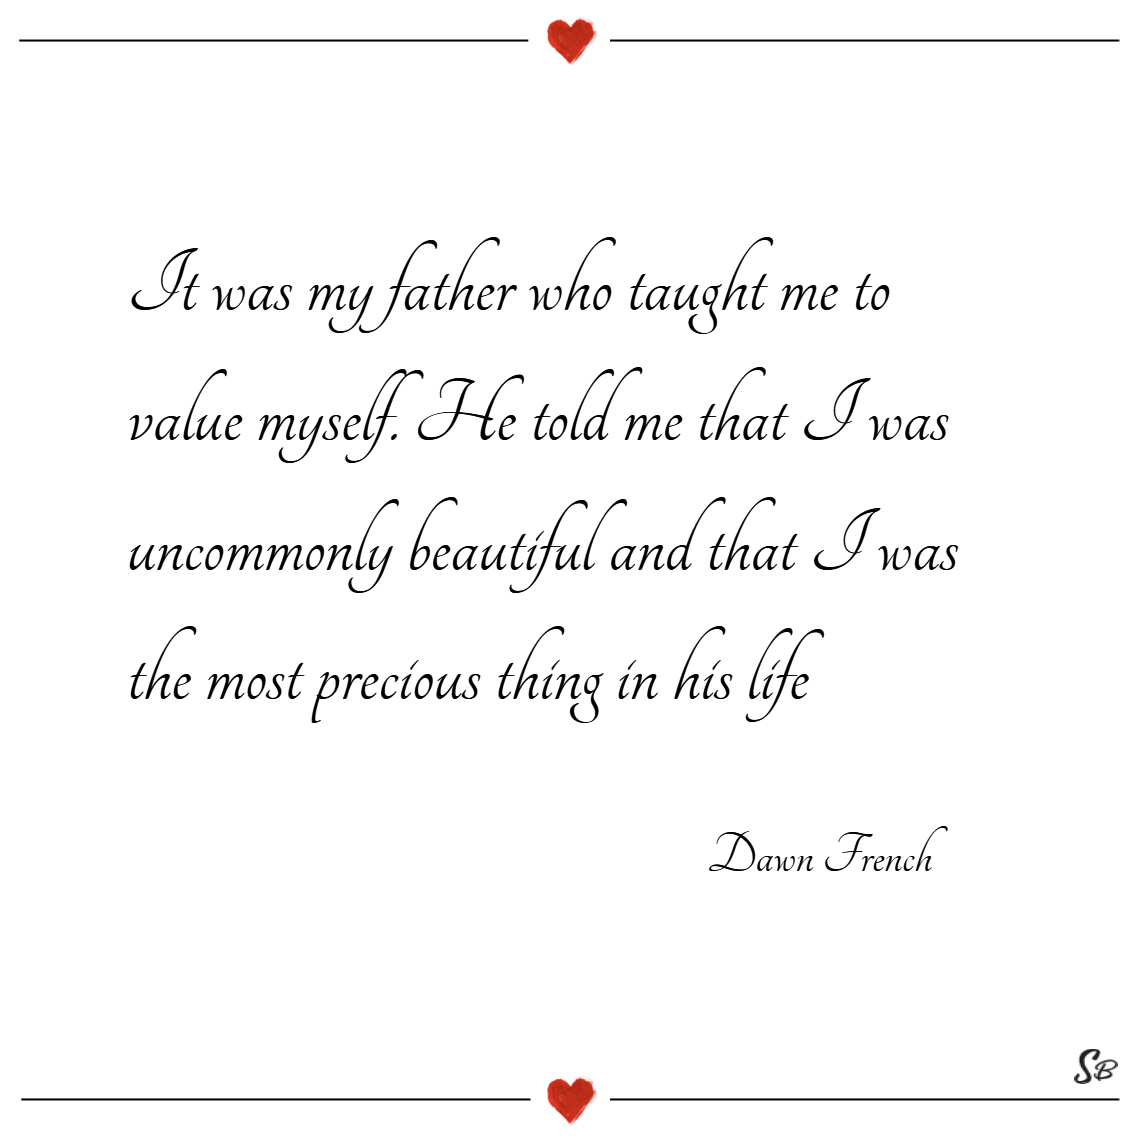 It was my father who taught me to value myself. he told me that i was uncommonly beautiful and that i was the most precious thing in his life. – dawn french